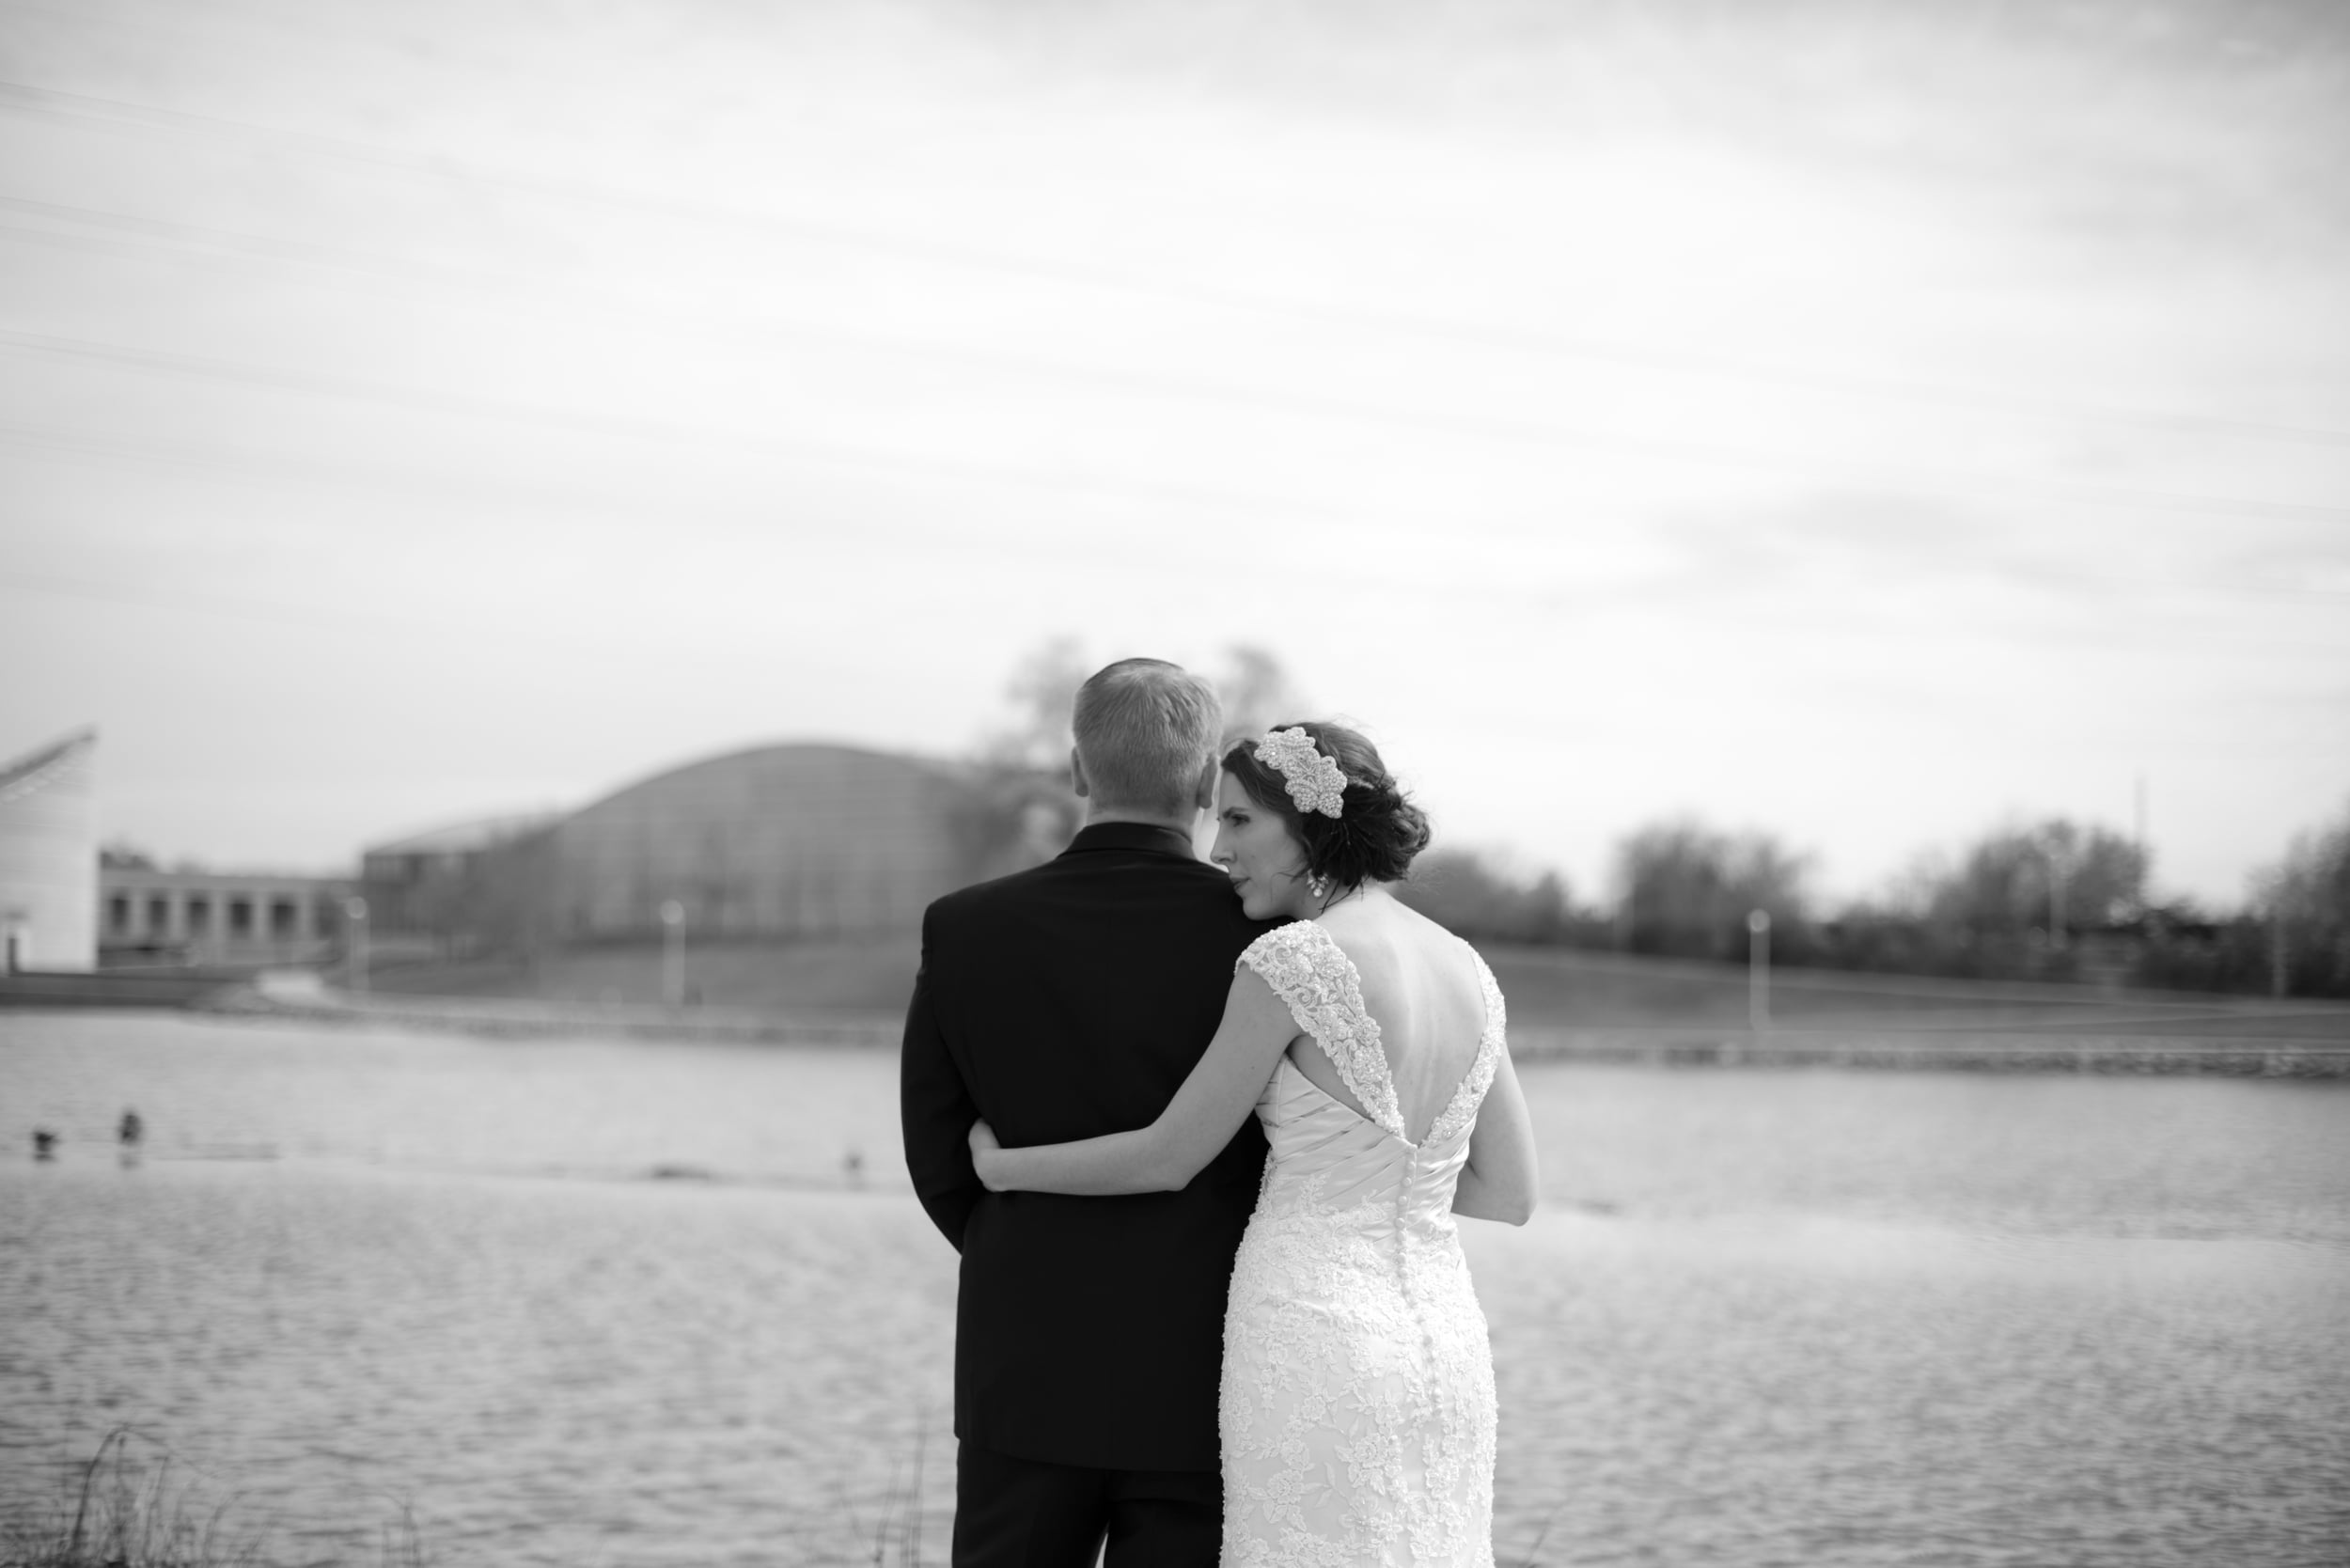 Sarah+Chris - JWild Photography (534).jpg